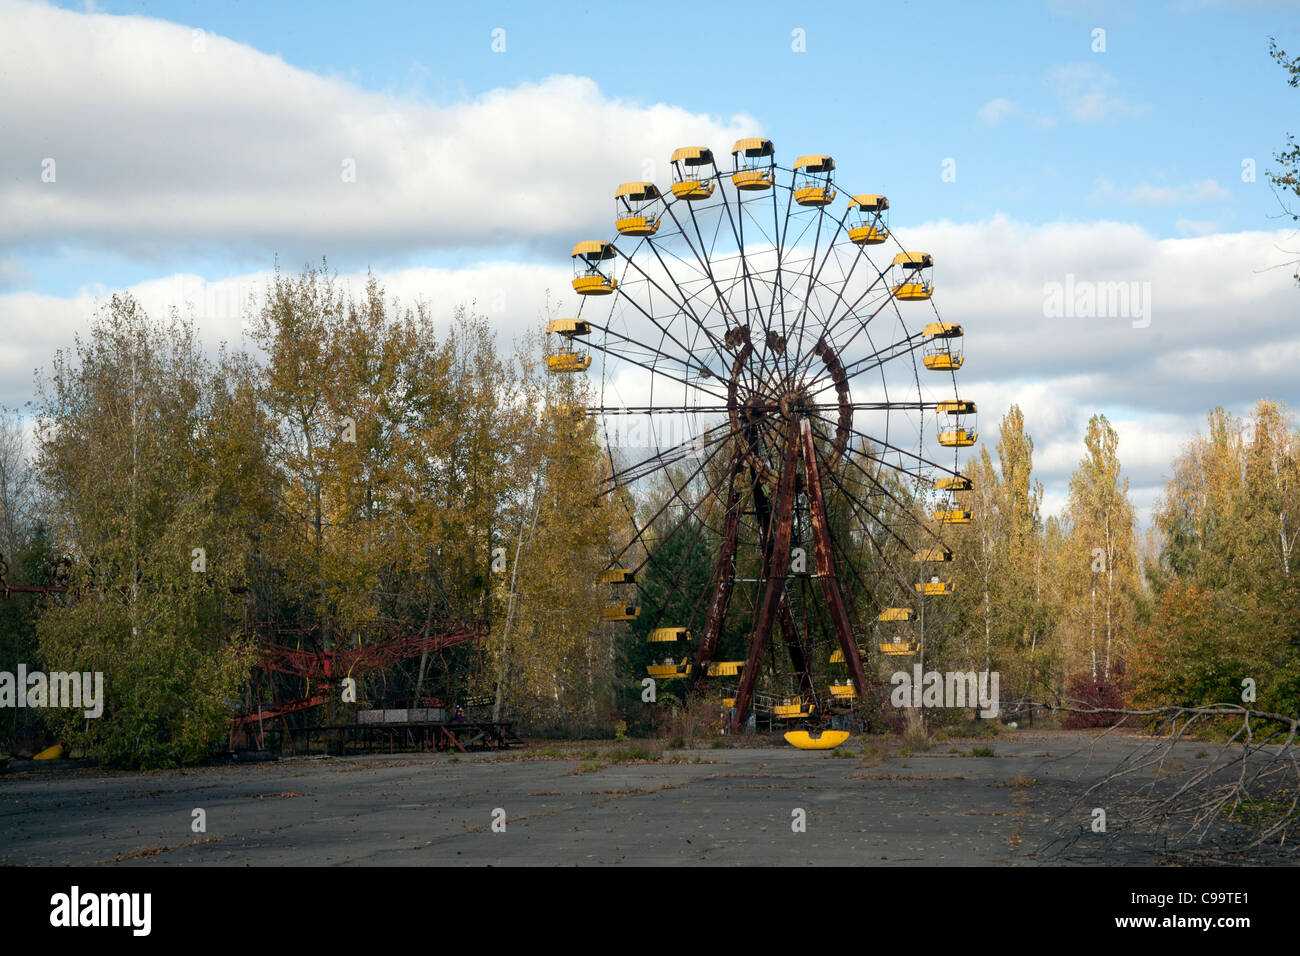 The Pripyat Ferris Wheel in the Pripyat Amusement Park Pripyat Chernobyl exclusion zone Ukraine - Stock Image